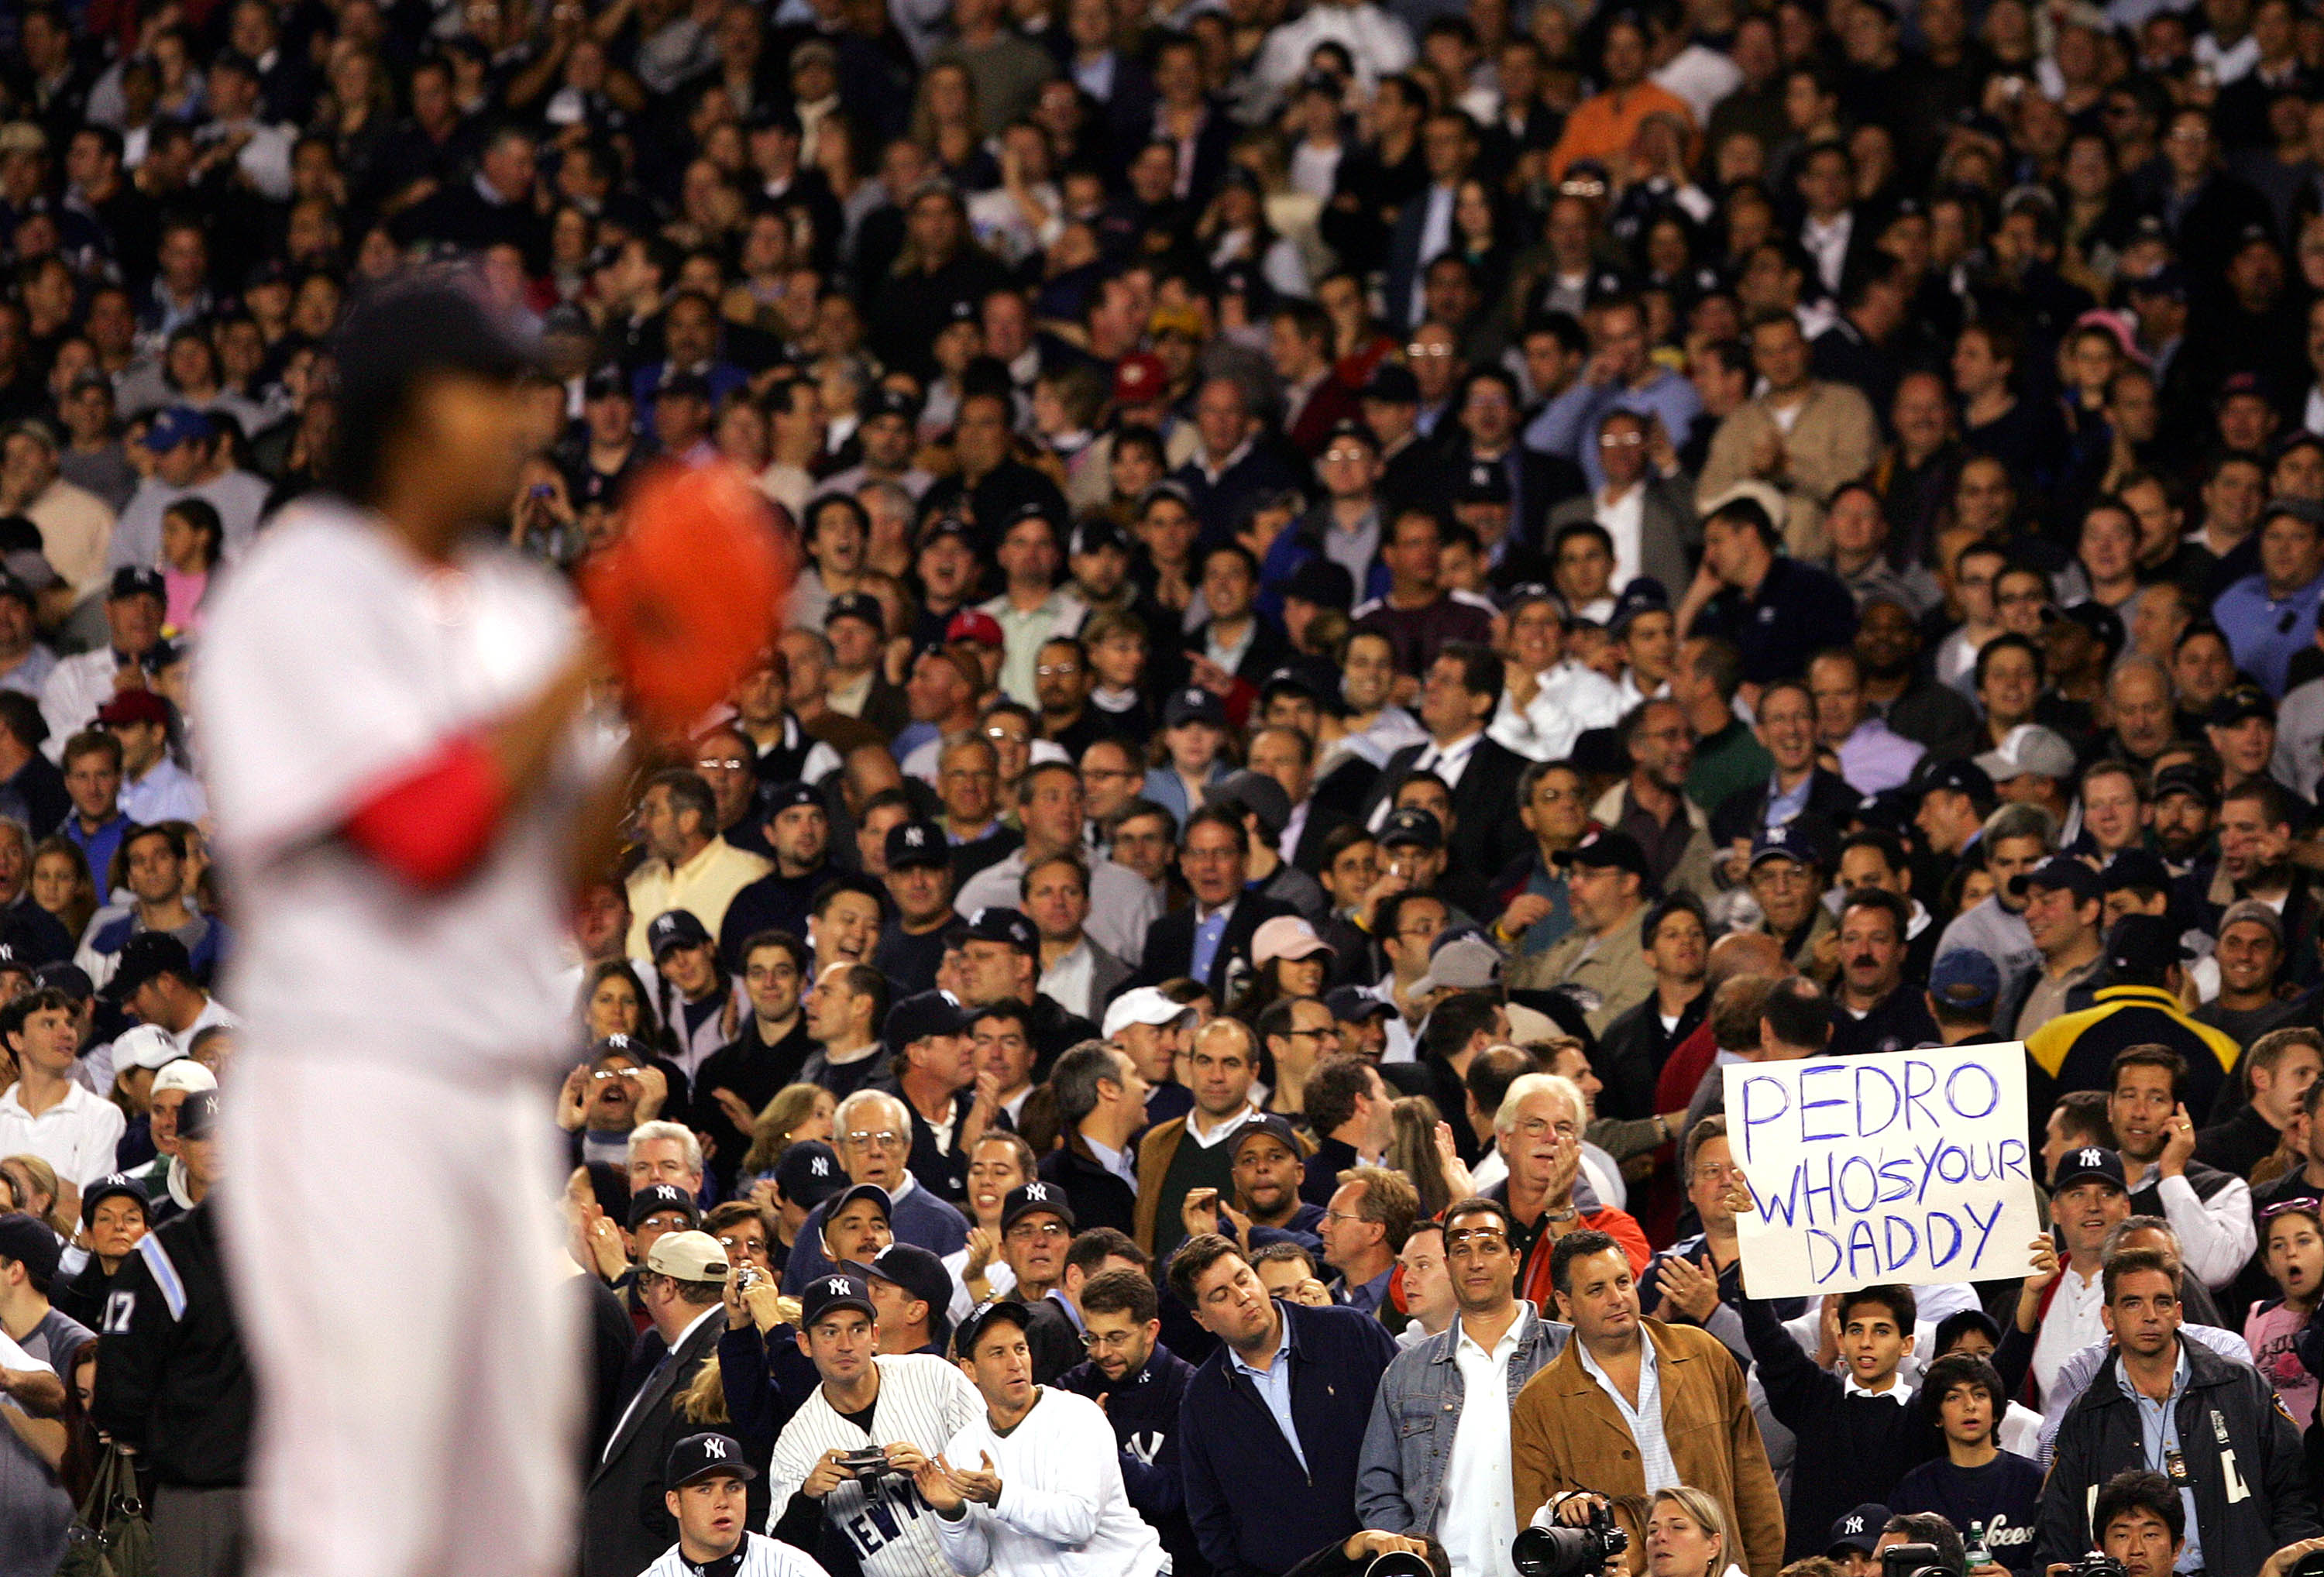 NEW YORK - OCTOBER 13:  A New York Yankees fan holds up a sign that reads 'Who's Your Daddy?' as pitcher Pedro Martinez #45 of the Boston Red Sox prepares to pitch in the sixth inning during game two of the American League Championship Series on October 1